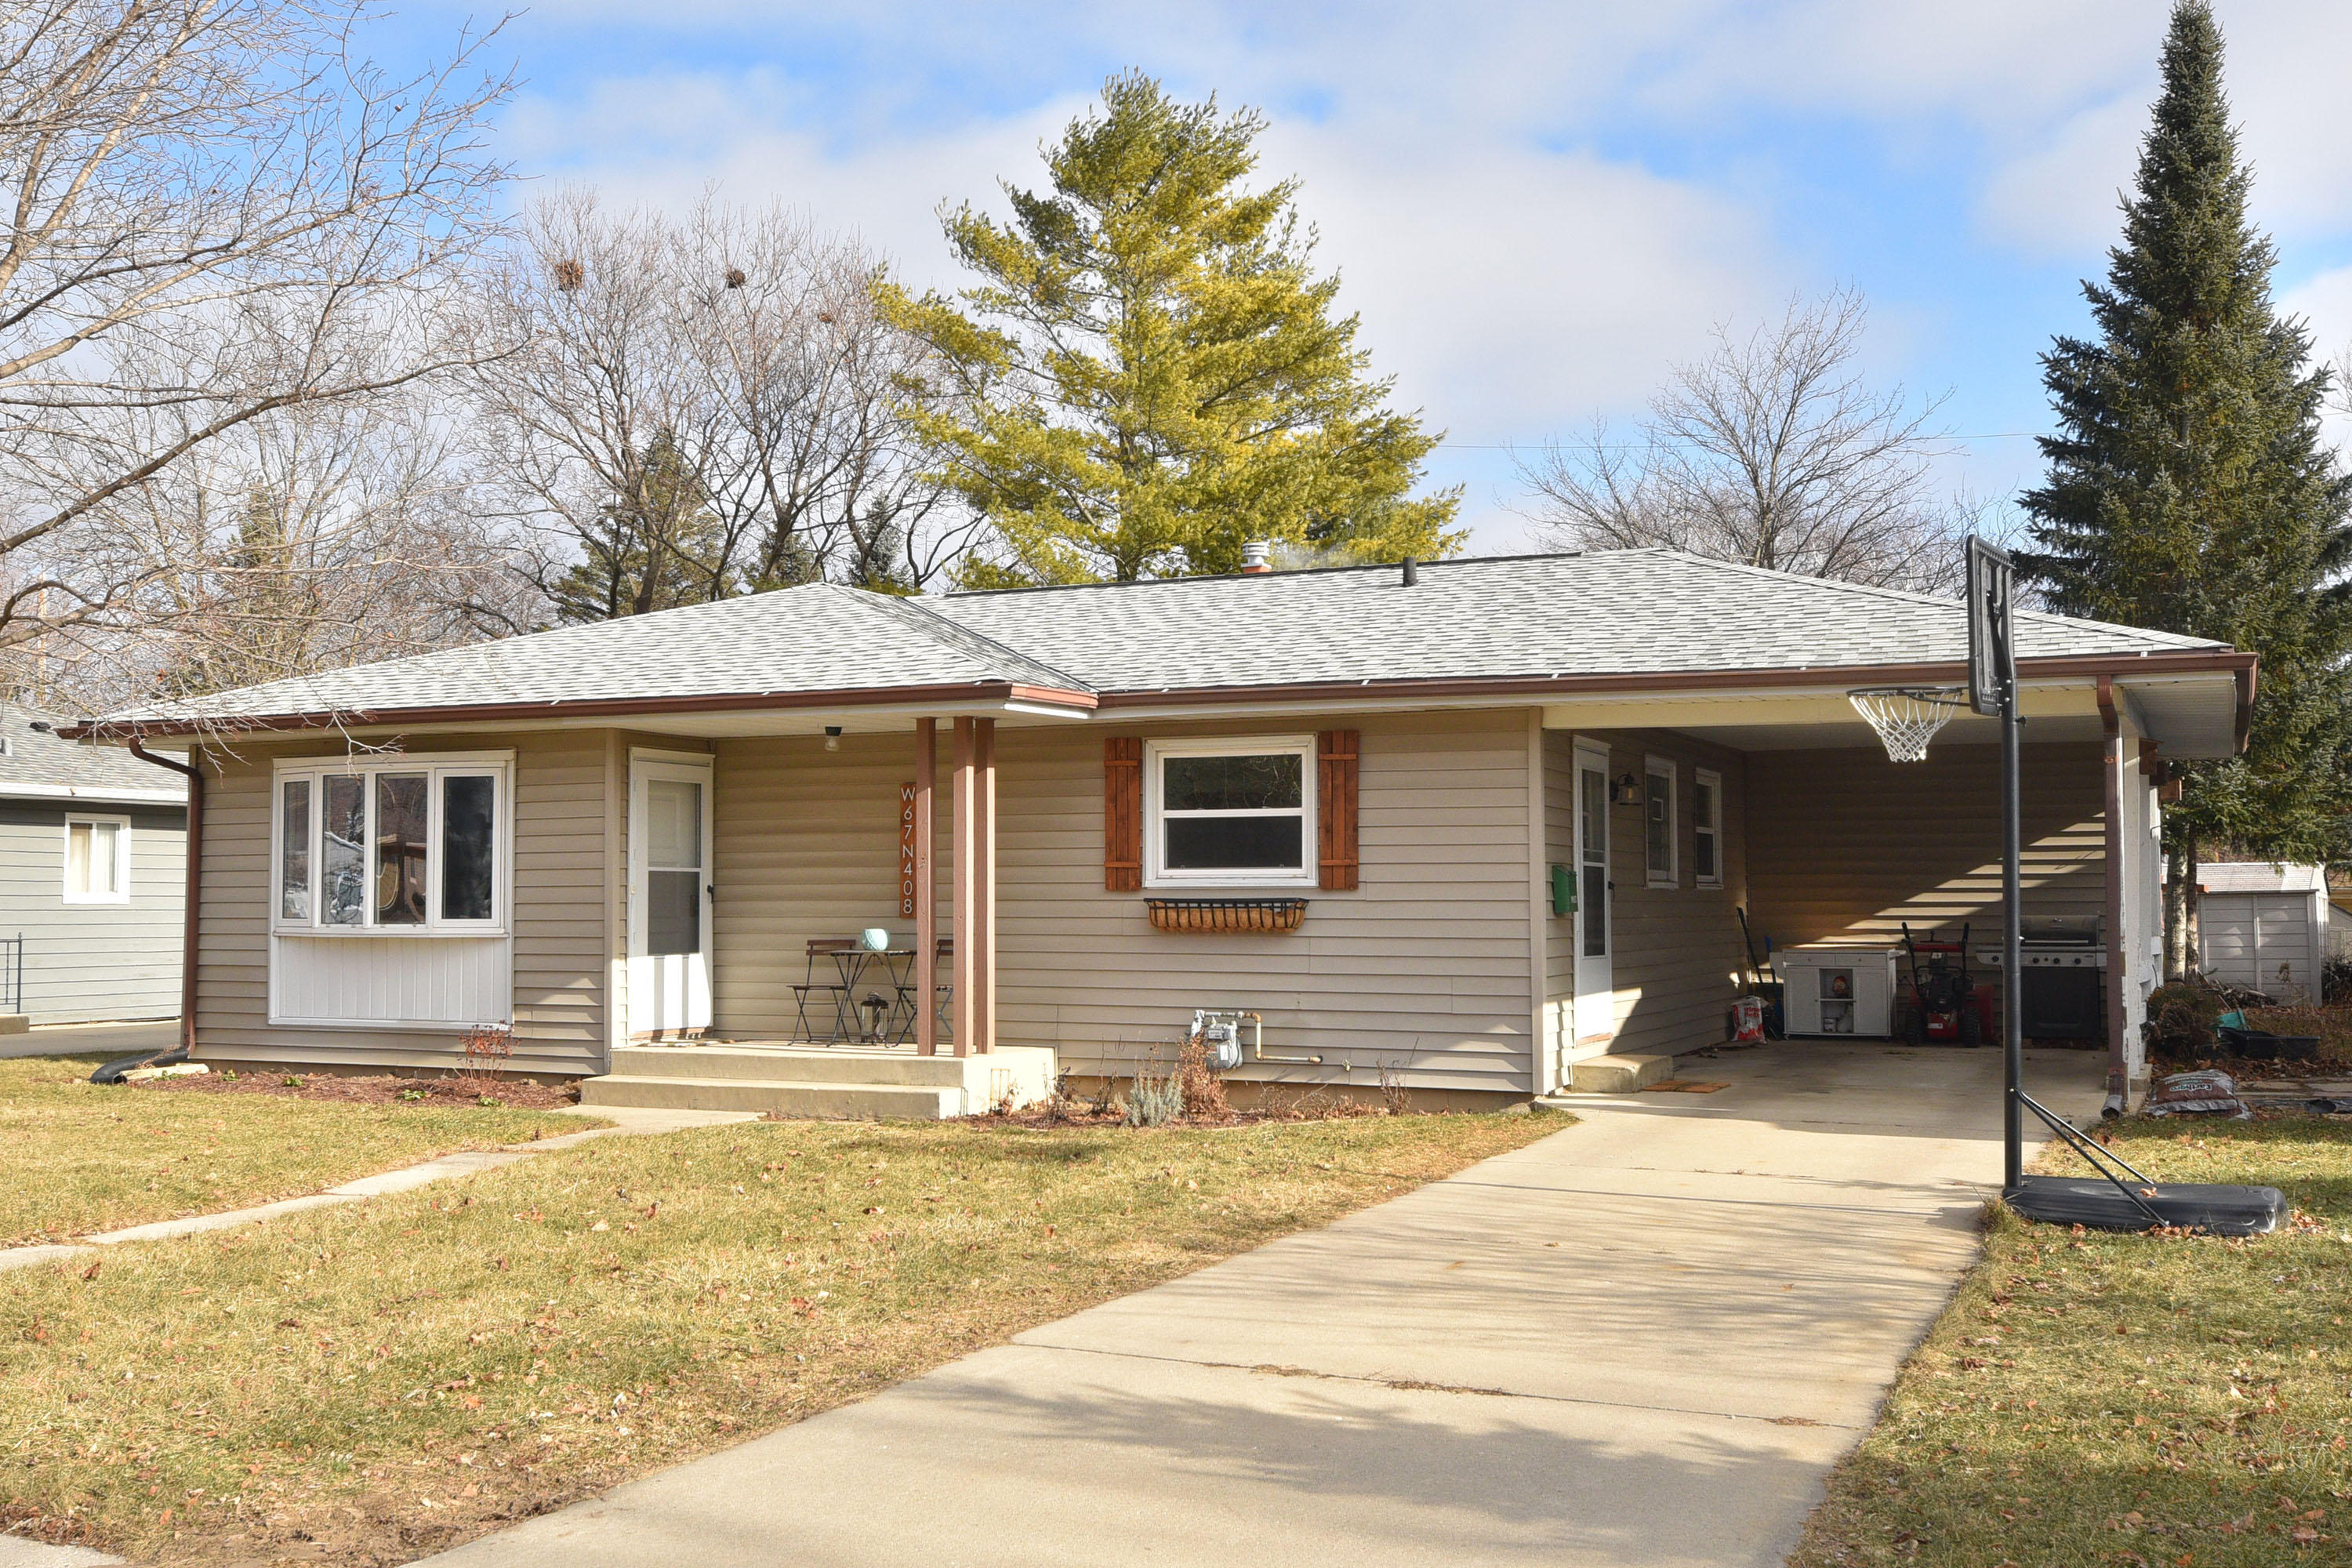 W67N408 Grant Ave, Cedarburg, Wisconsin 53012, 3 Bedrooms Bedrooms, 5 Rooms Rooms,1 BathroomBathrooms,Single-Family,For Sale,Grant Ave,1619254